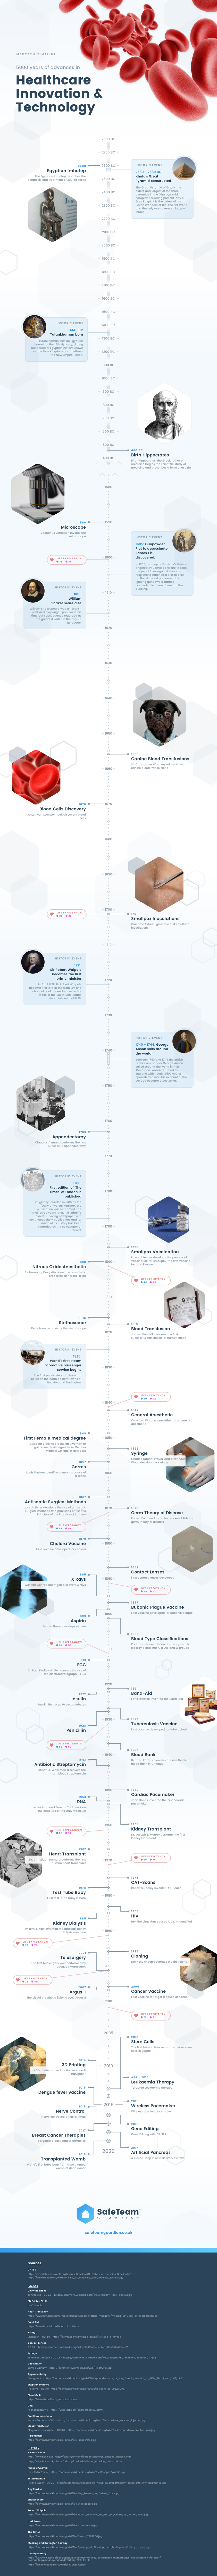 Medtech Timeline - 5000 years of advances in Healthcare Innovation & Technology